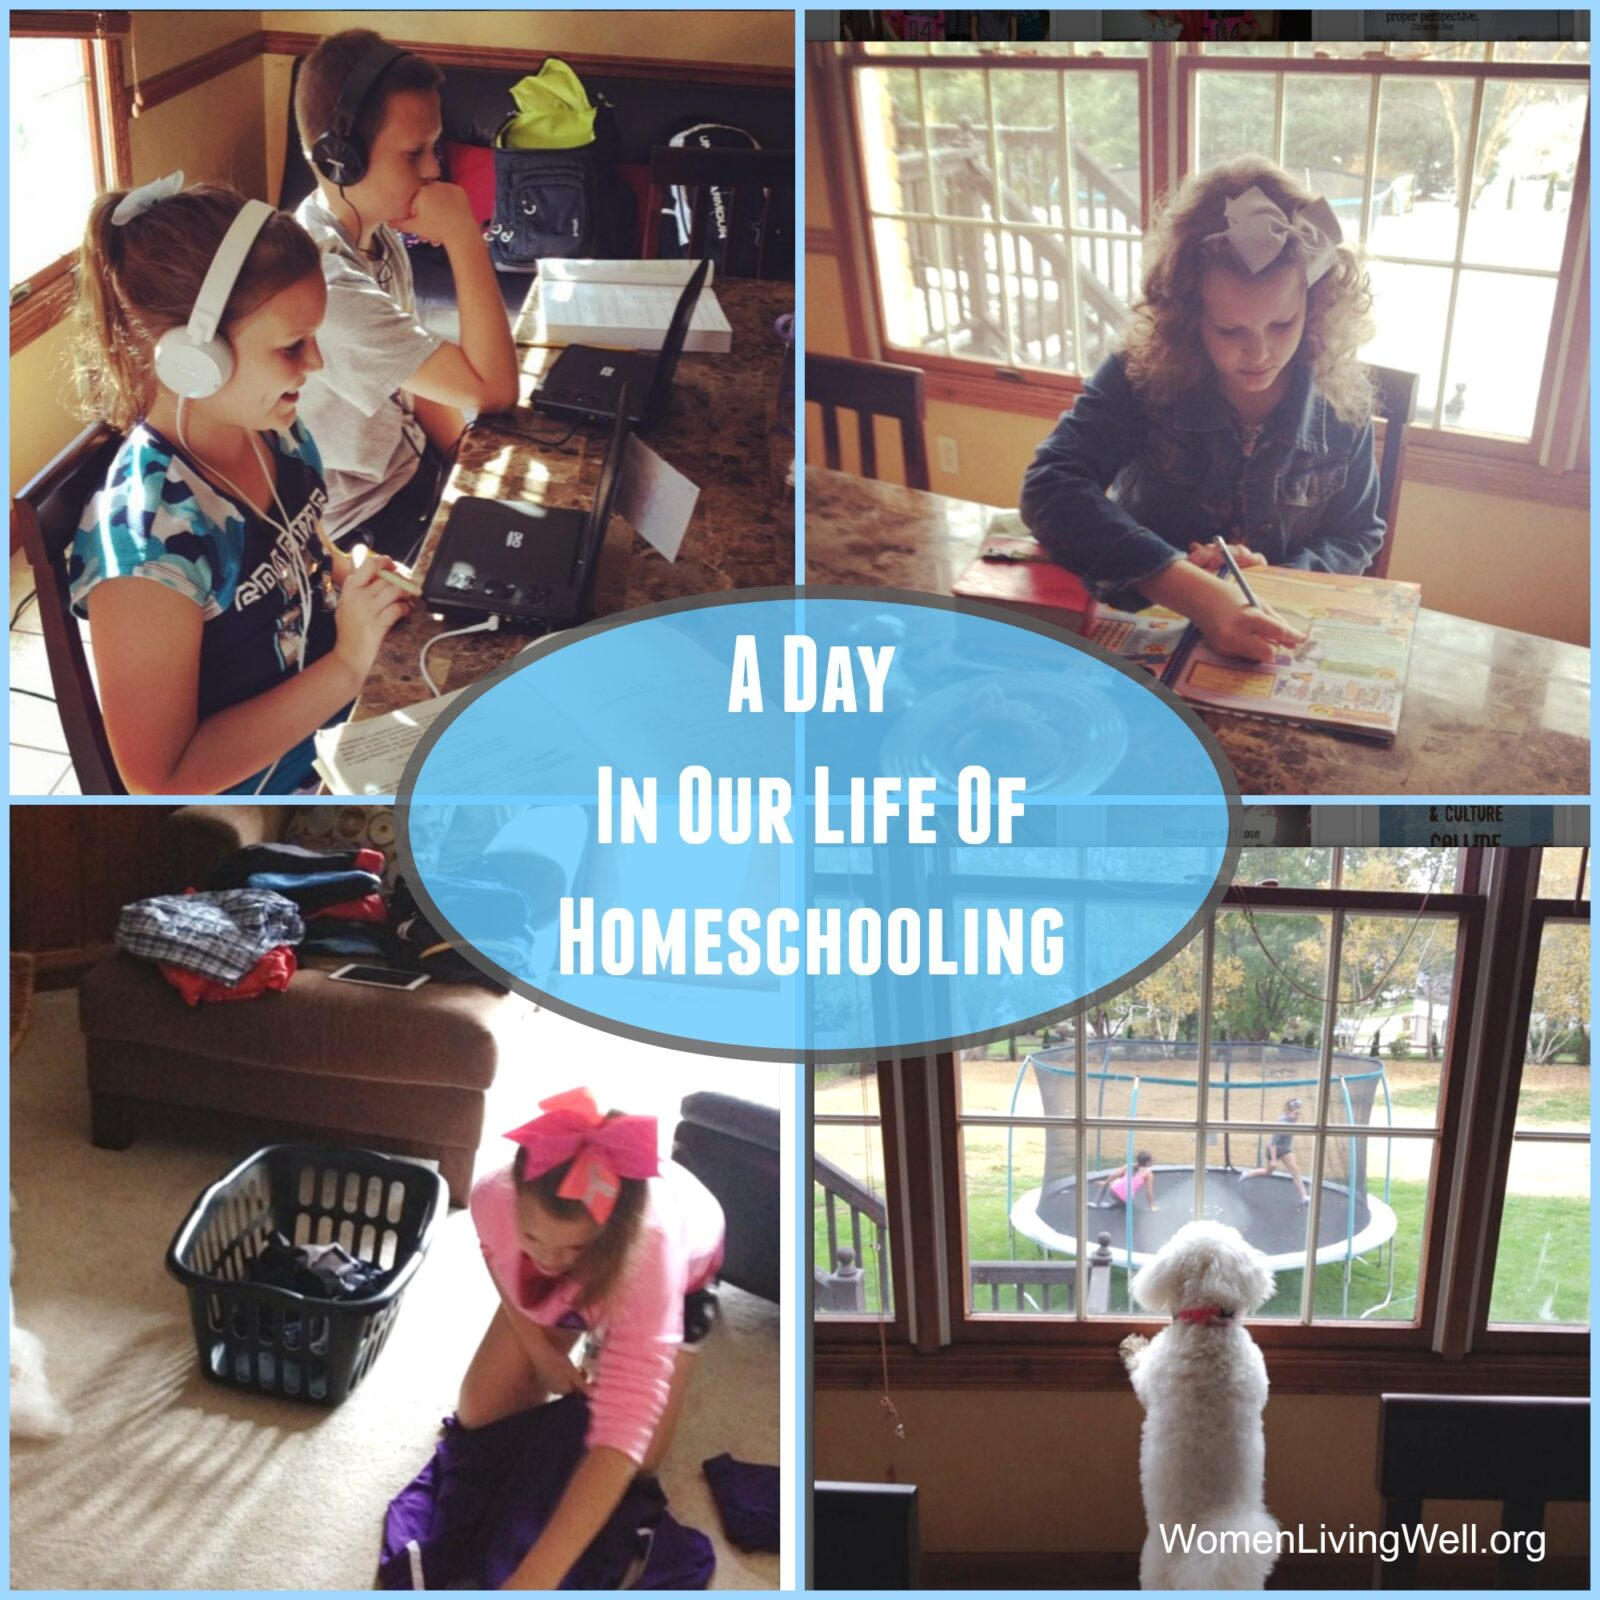 A Day In Our Life of Homeschooling…